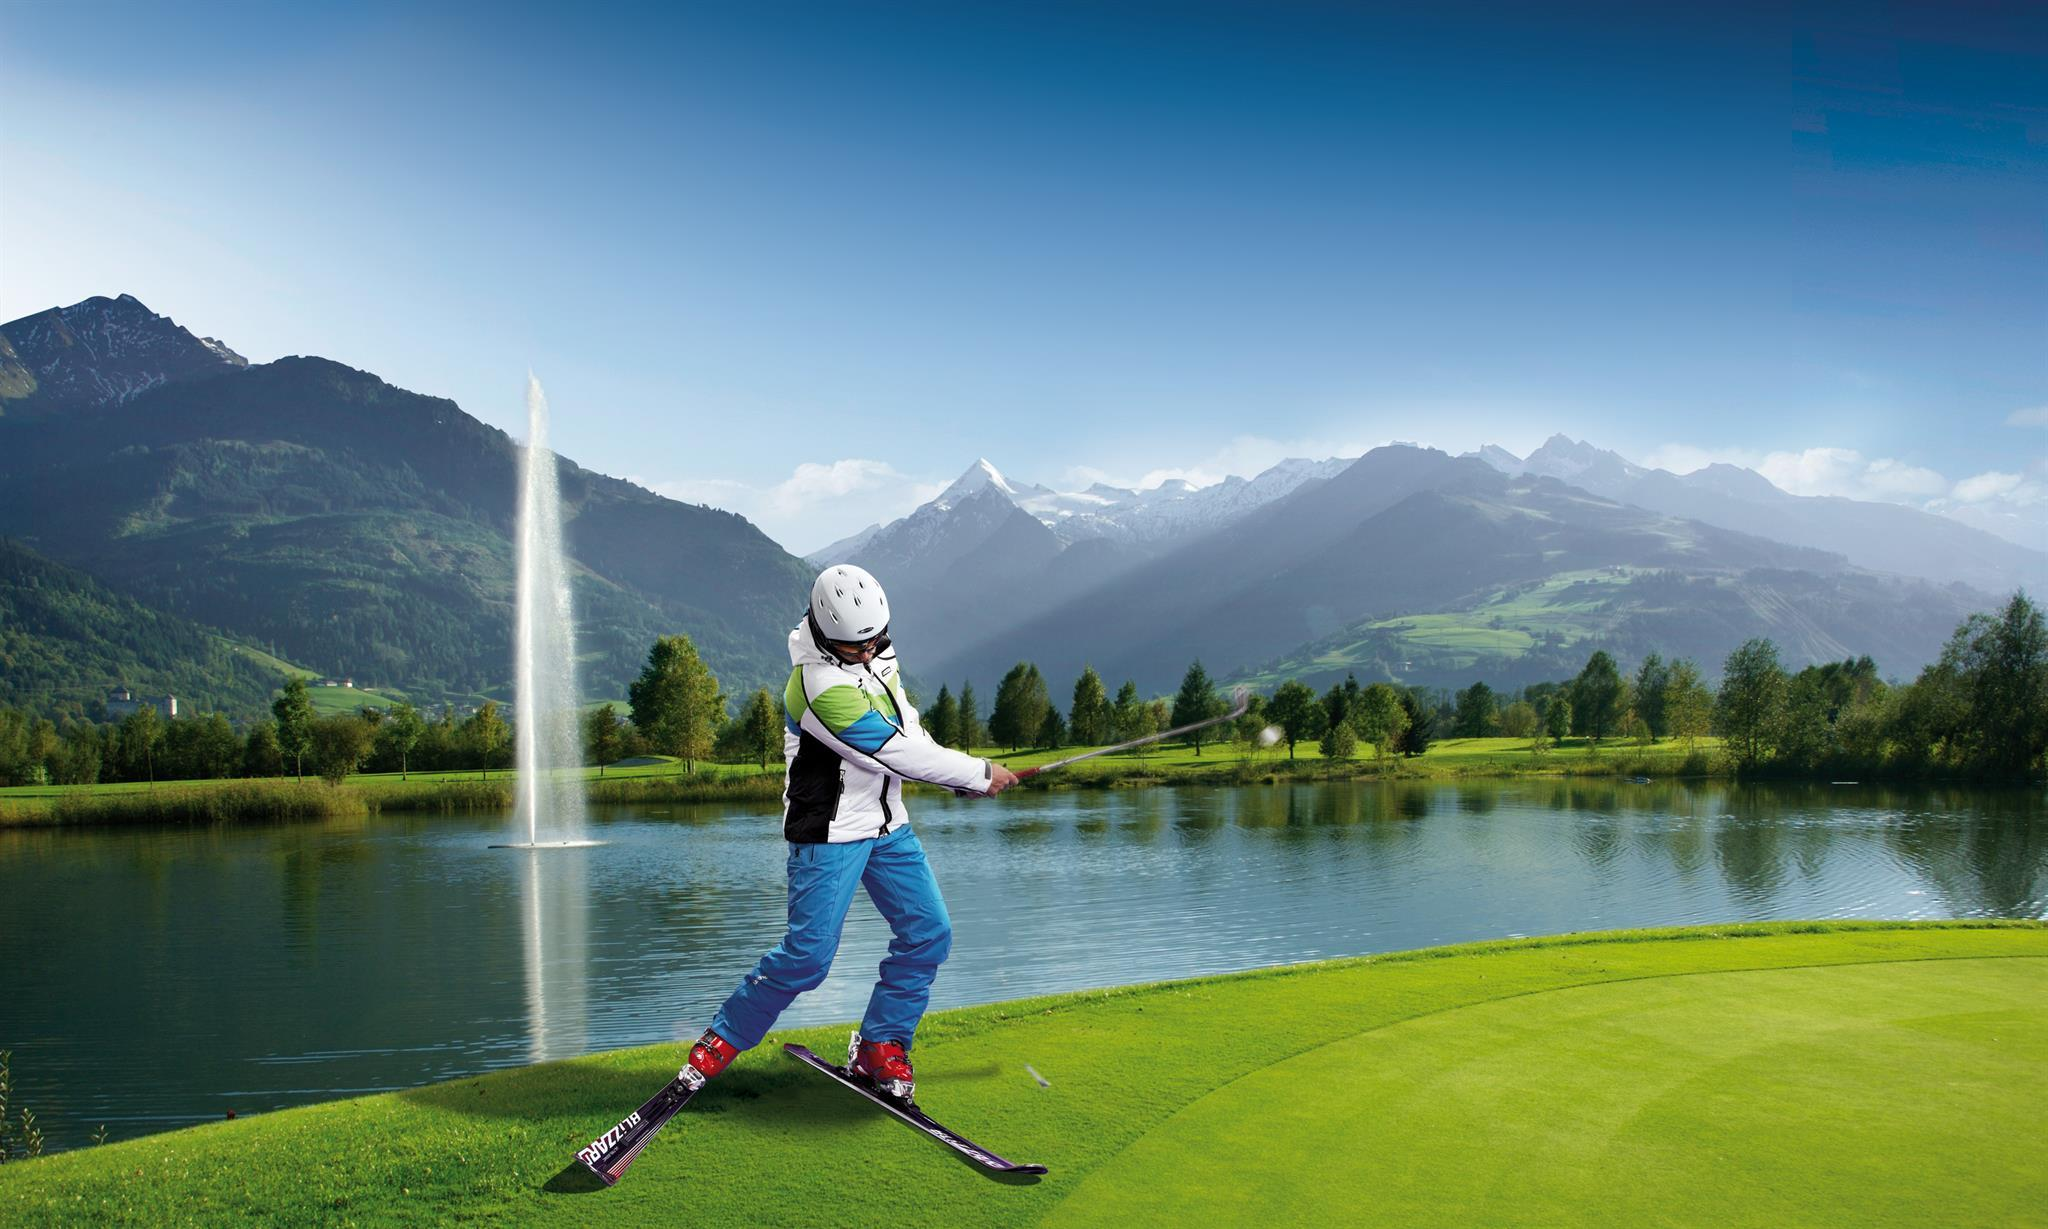 Ski & Golf World Championship 2020 - 23/05/2020